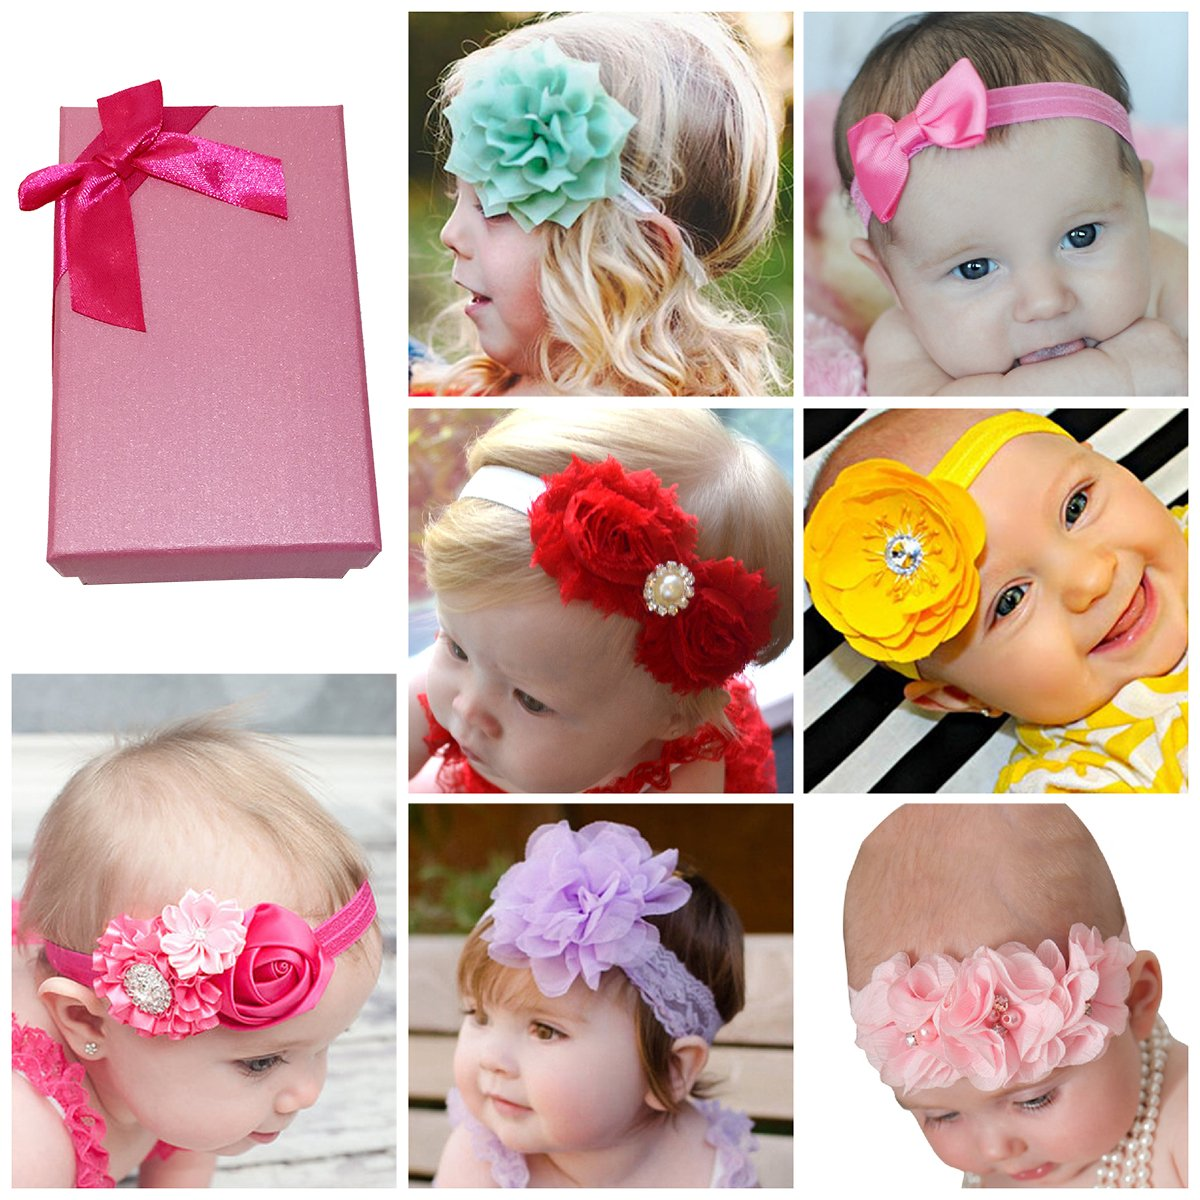 Elesa Miracle Hair Accessories Lovely Baby Girl's Gift Box with Chiffon Lace Hair Bow Flower Headband (7 different style set 3)